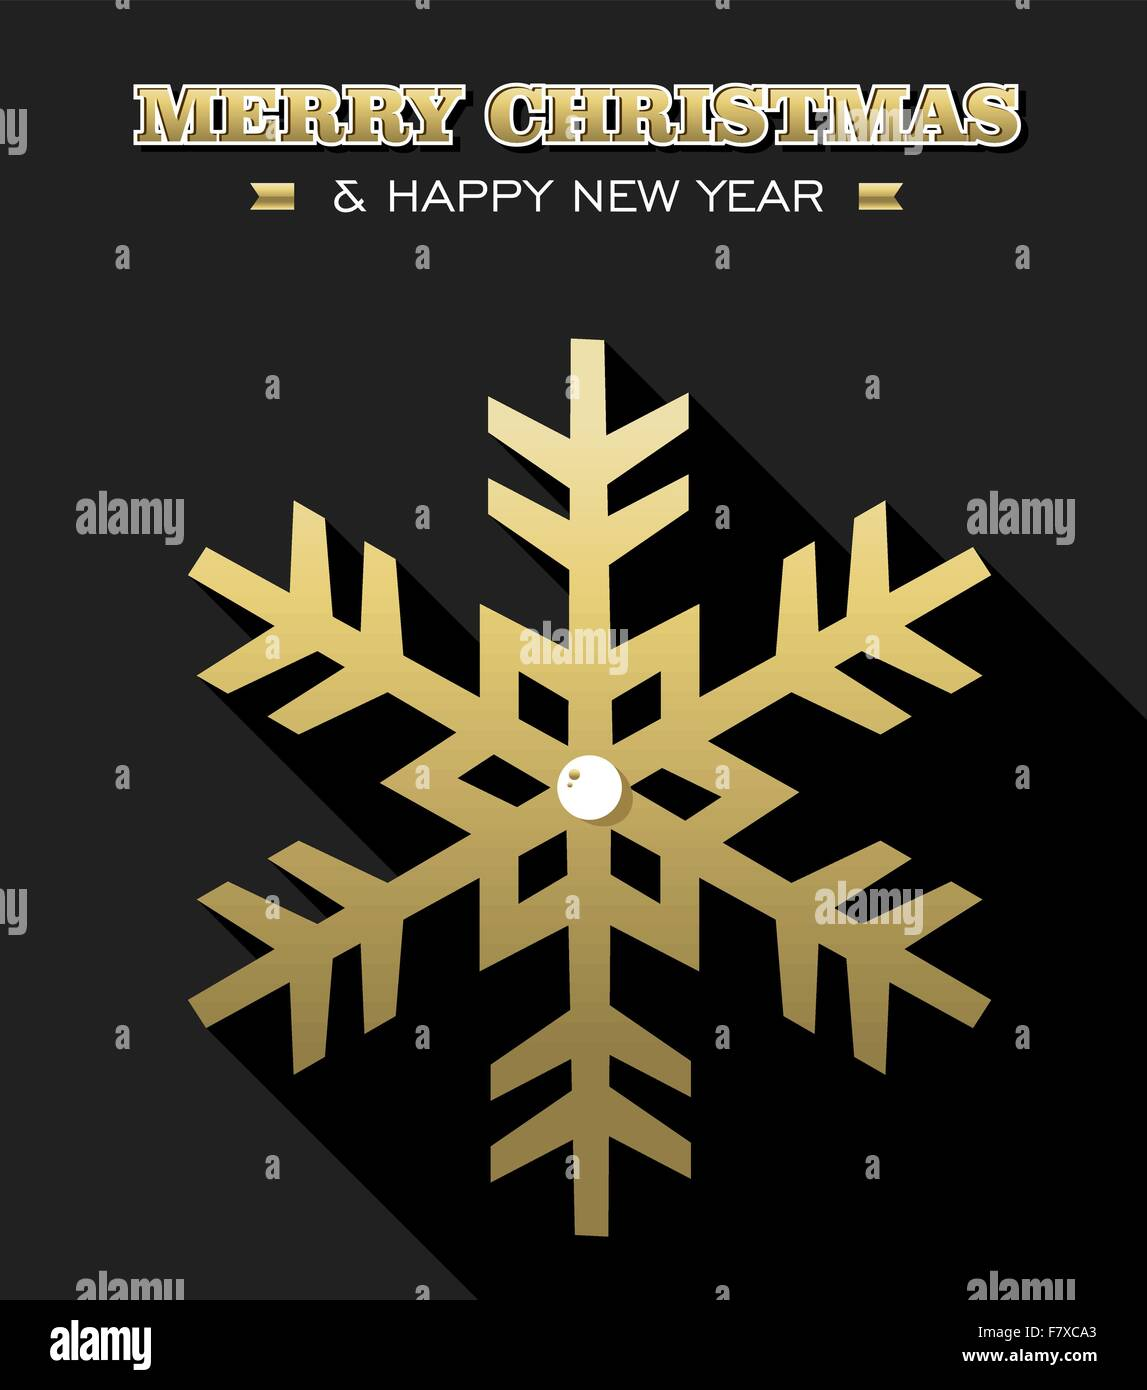 Merry Christmas Happy New Year Gold Snowflake Design On Black Background Ideal For Xmas Greeting Card Holiday Poster Or Web